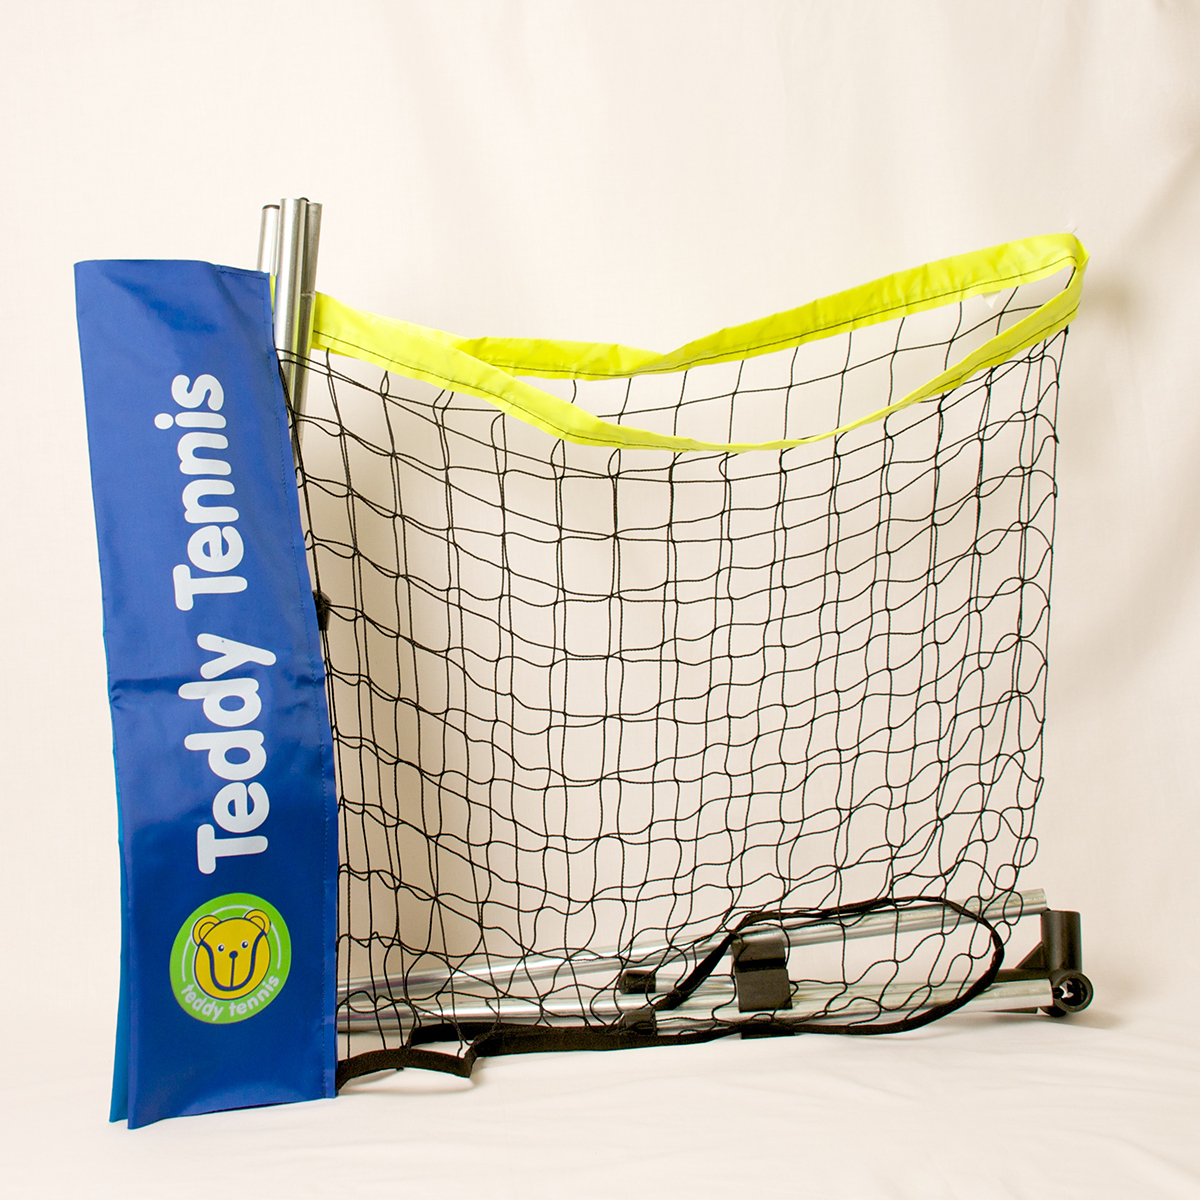 Beginner's Tennis Net